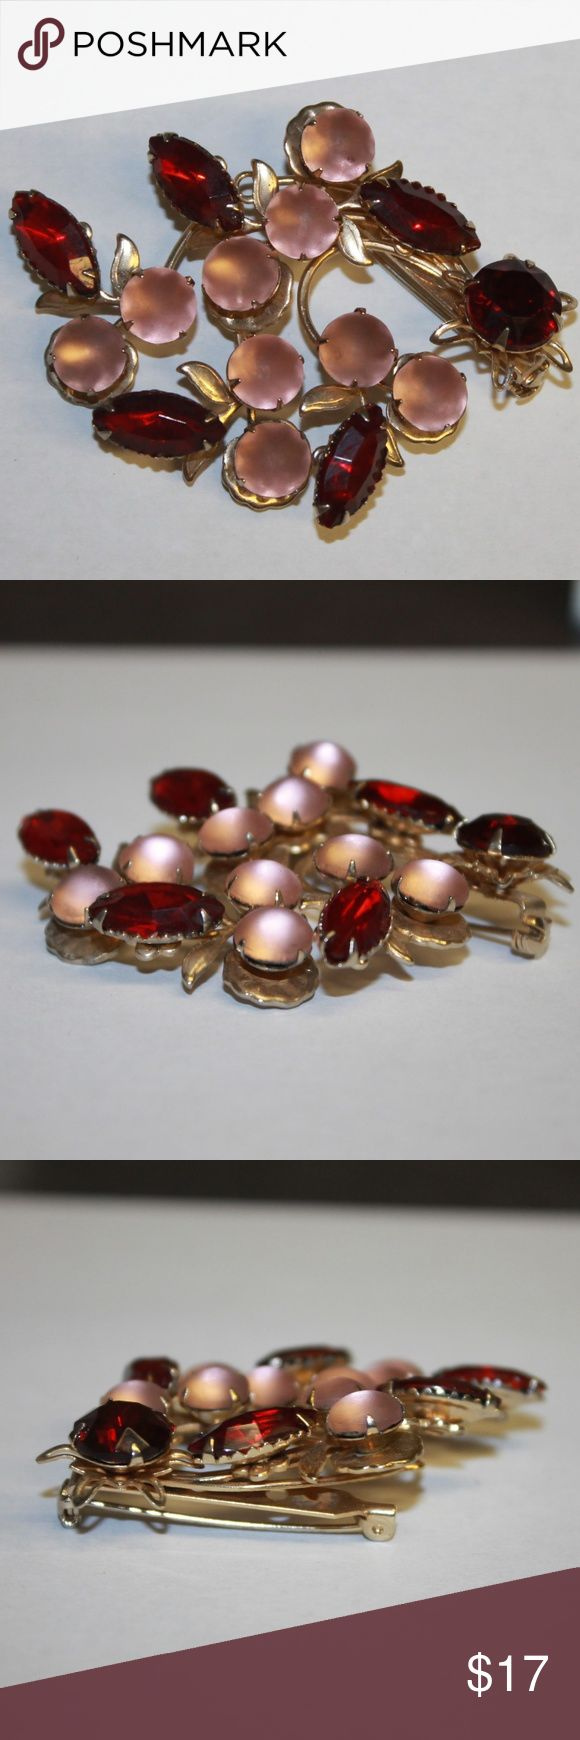 Pink & Red Glass Rhinestone Flower Pin Brooch Gold 2/18-JB229 Absolutely gorgeous floral spray brooch featuring faceted ruby red navettes and frosted pink cabochons. Overall great vintage condition. This brooch measures 2 inches tall by 2.5 inches wide. Total weight of 0.67 ounces. All jewelry / accessories come with a gift box and are usually sent out same day or next day (business days). Please examine the pictures closely, as we consider them to be a part of the description. Jewelry…